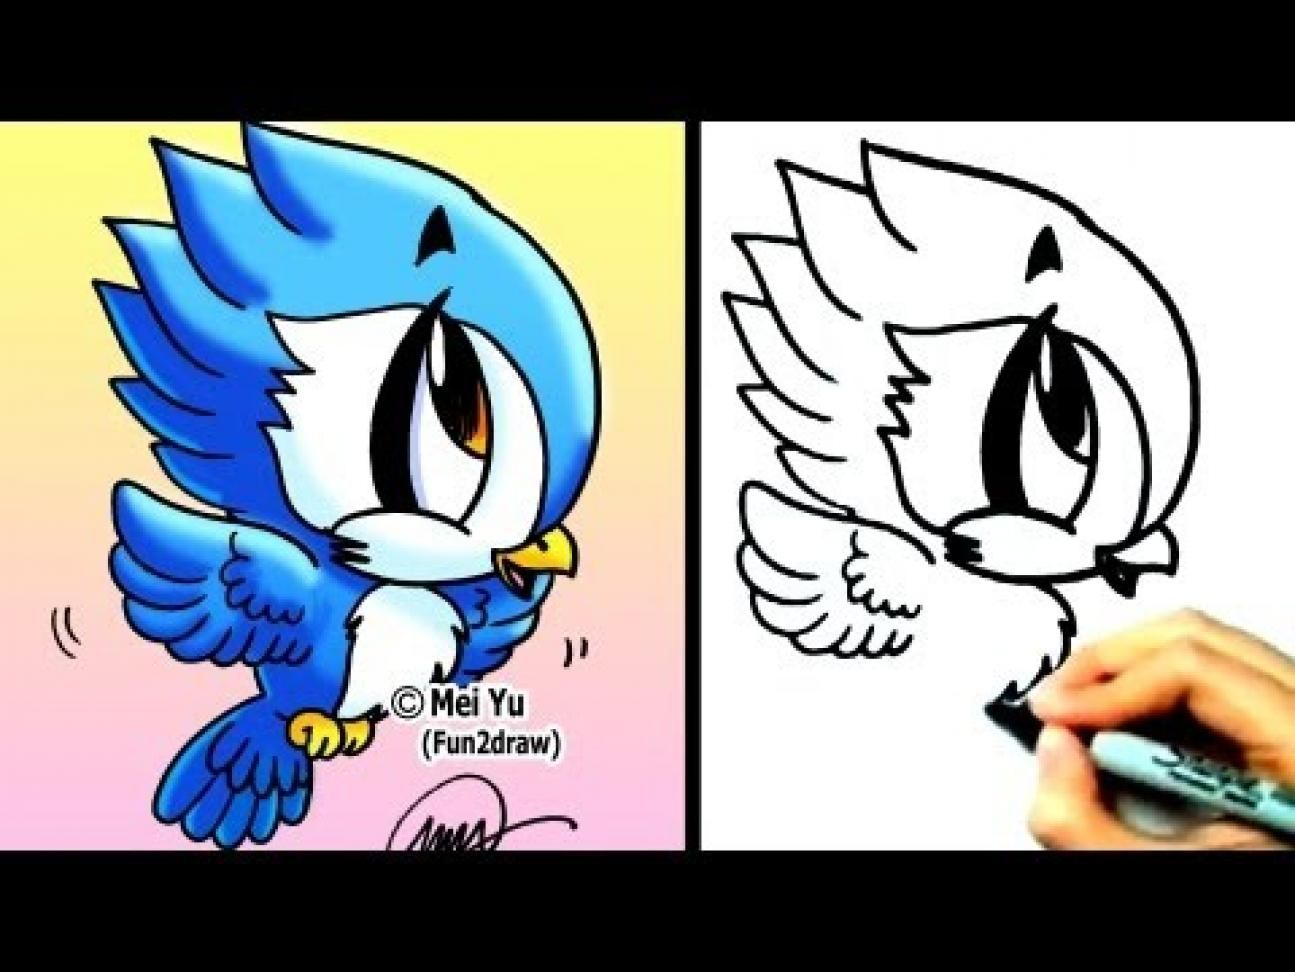 1000 Ideas About Fun 2 Draw On Pinterest How To Draw Cartoons Fun2draw Bird Drawings Cute Drawings